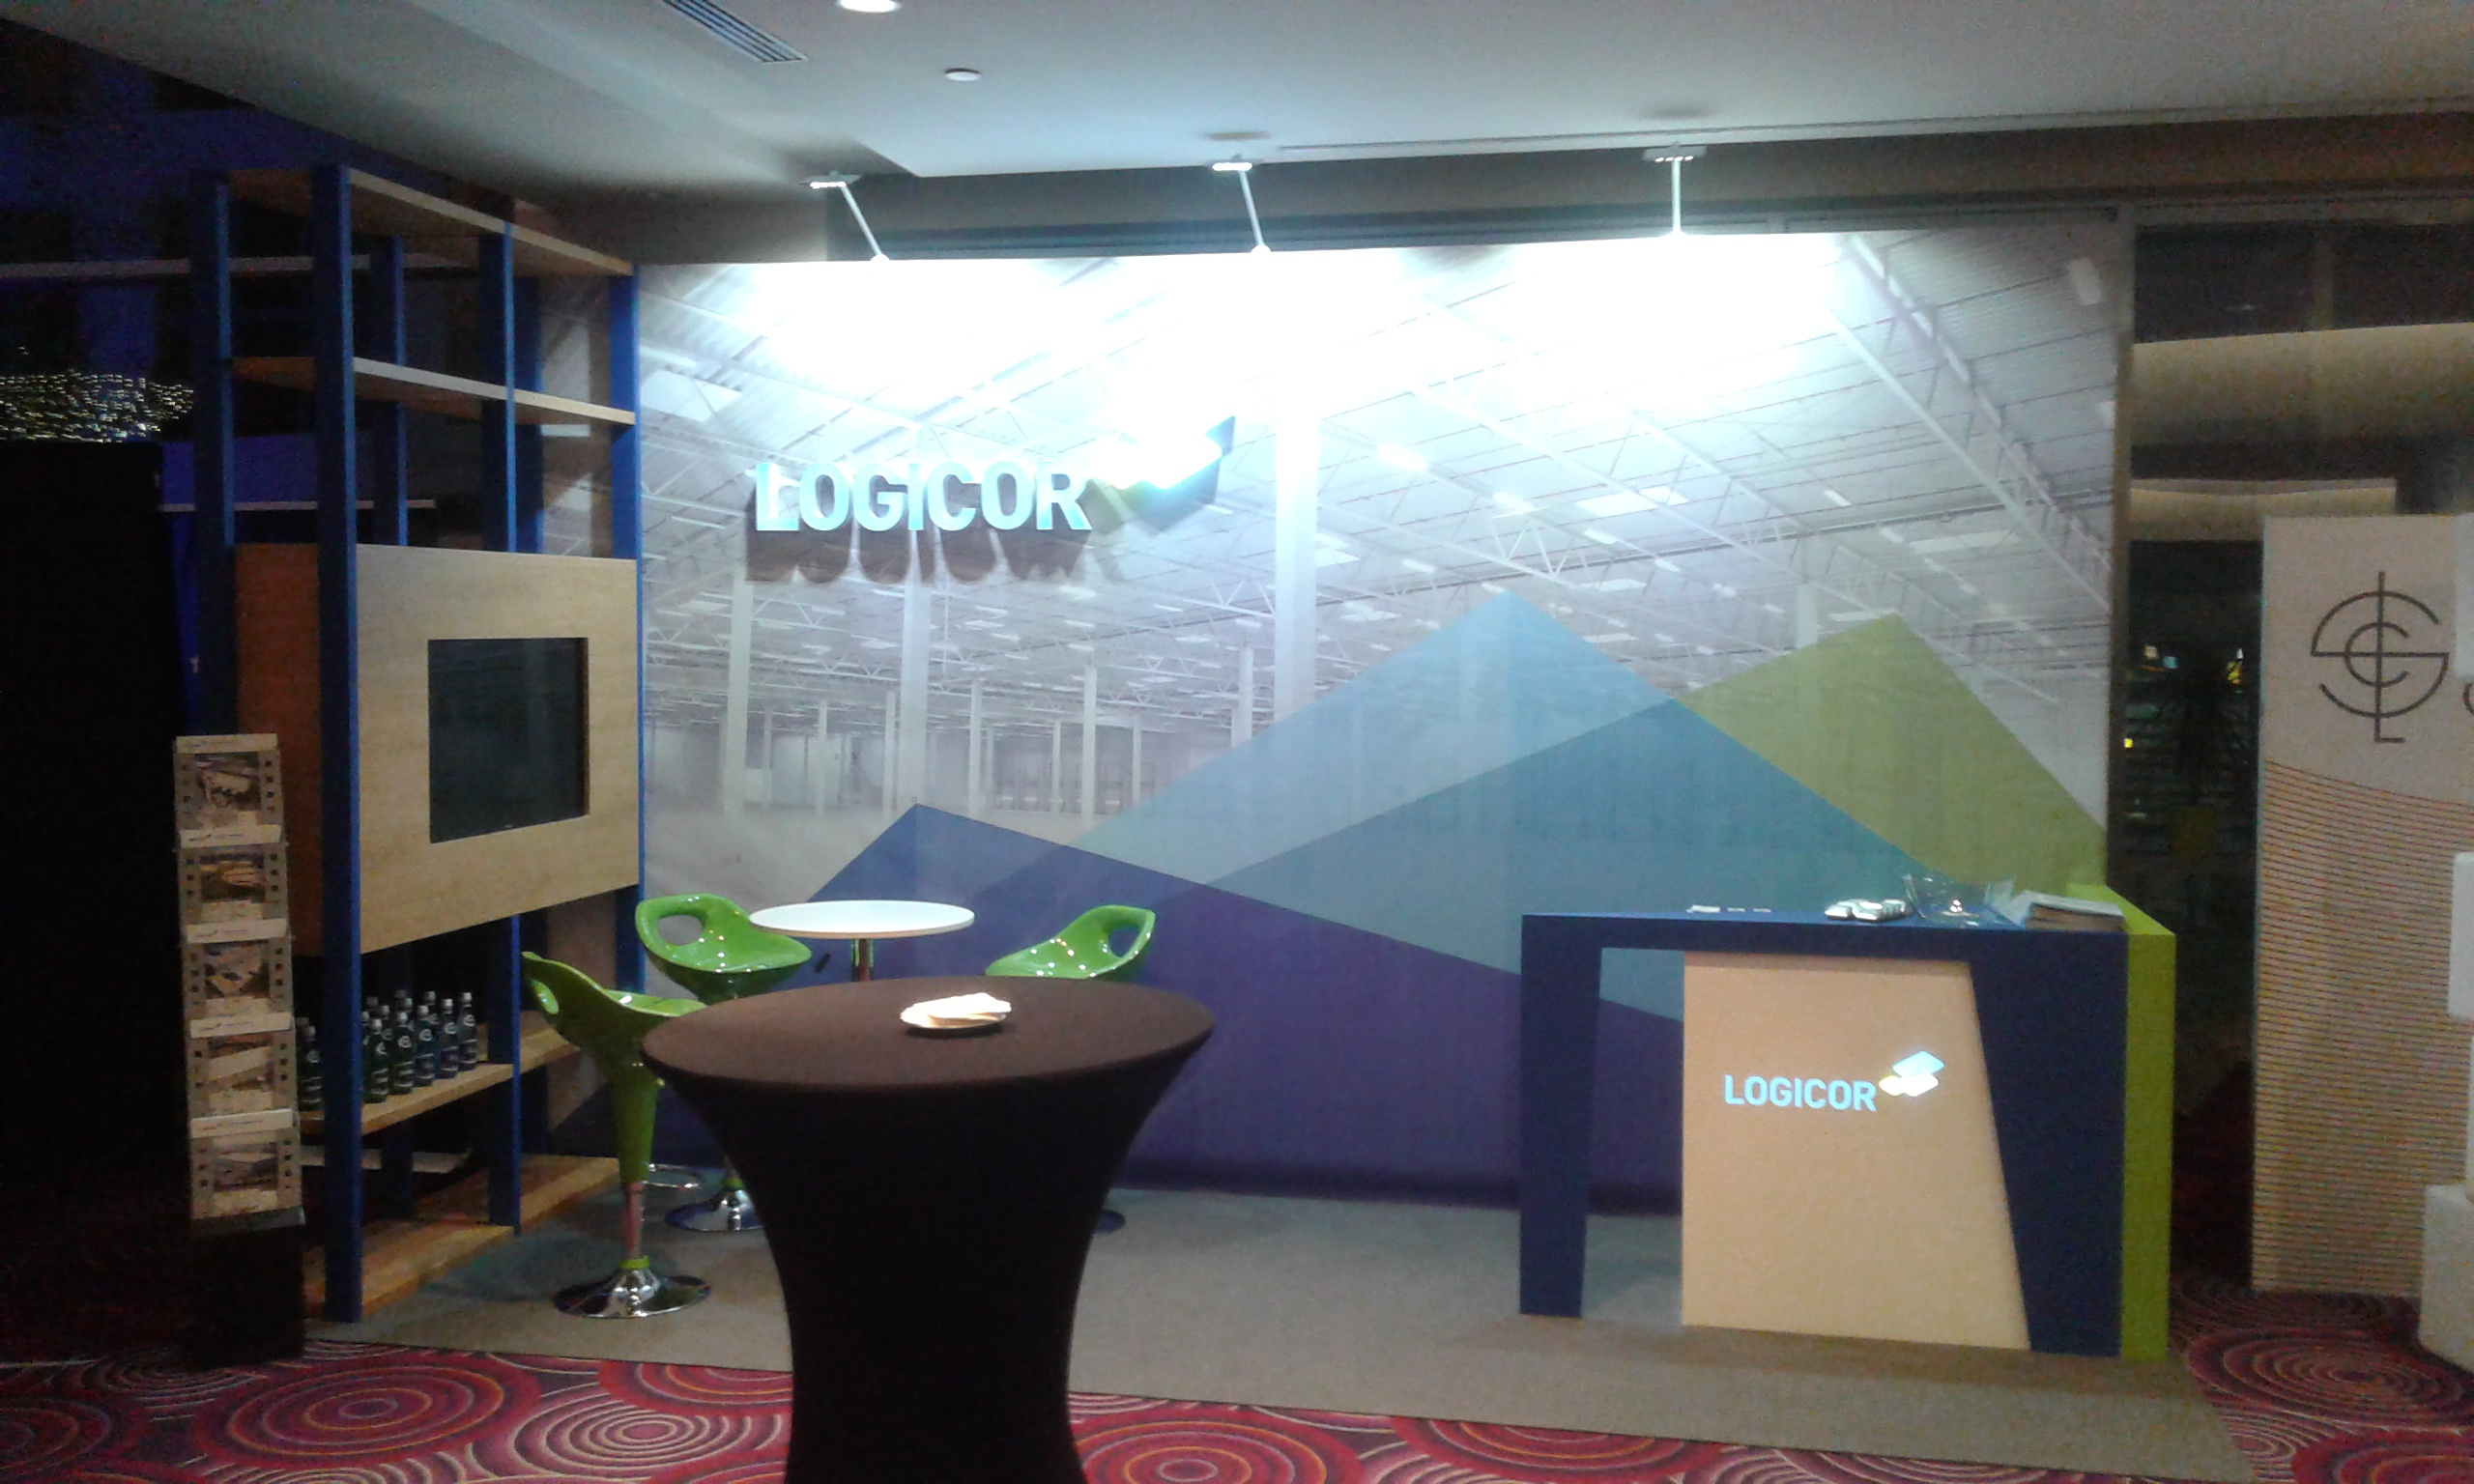 Exhibition Stand Wall : Wall exhibition stand u exhibition stands market stalls fair